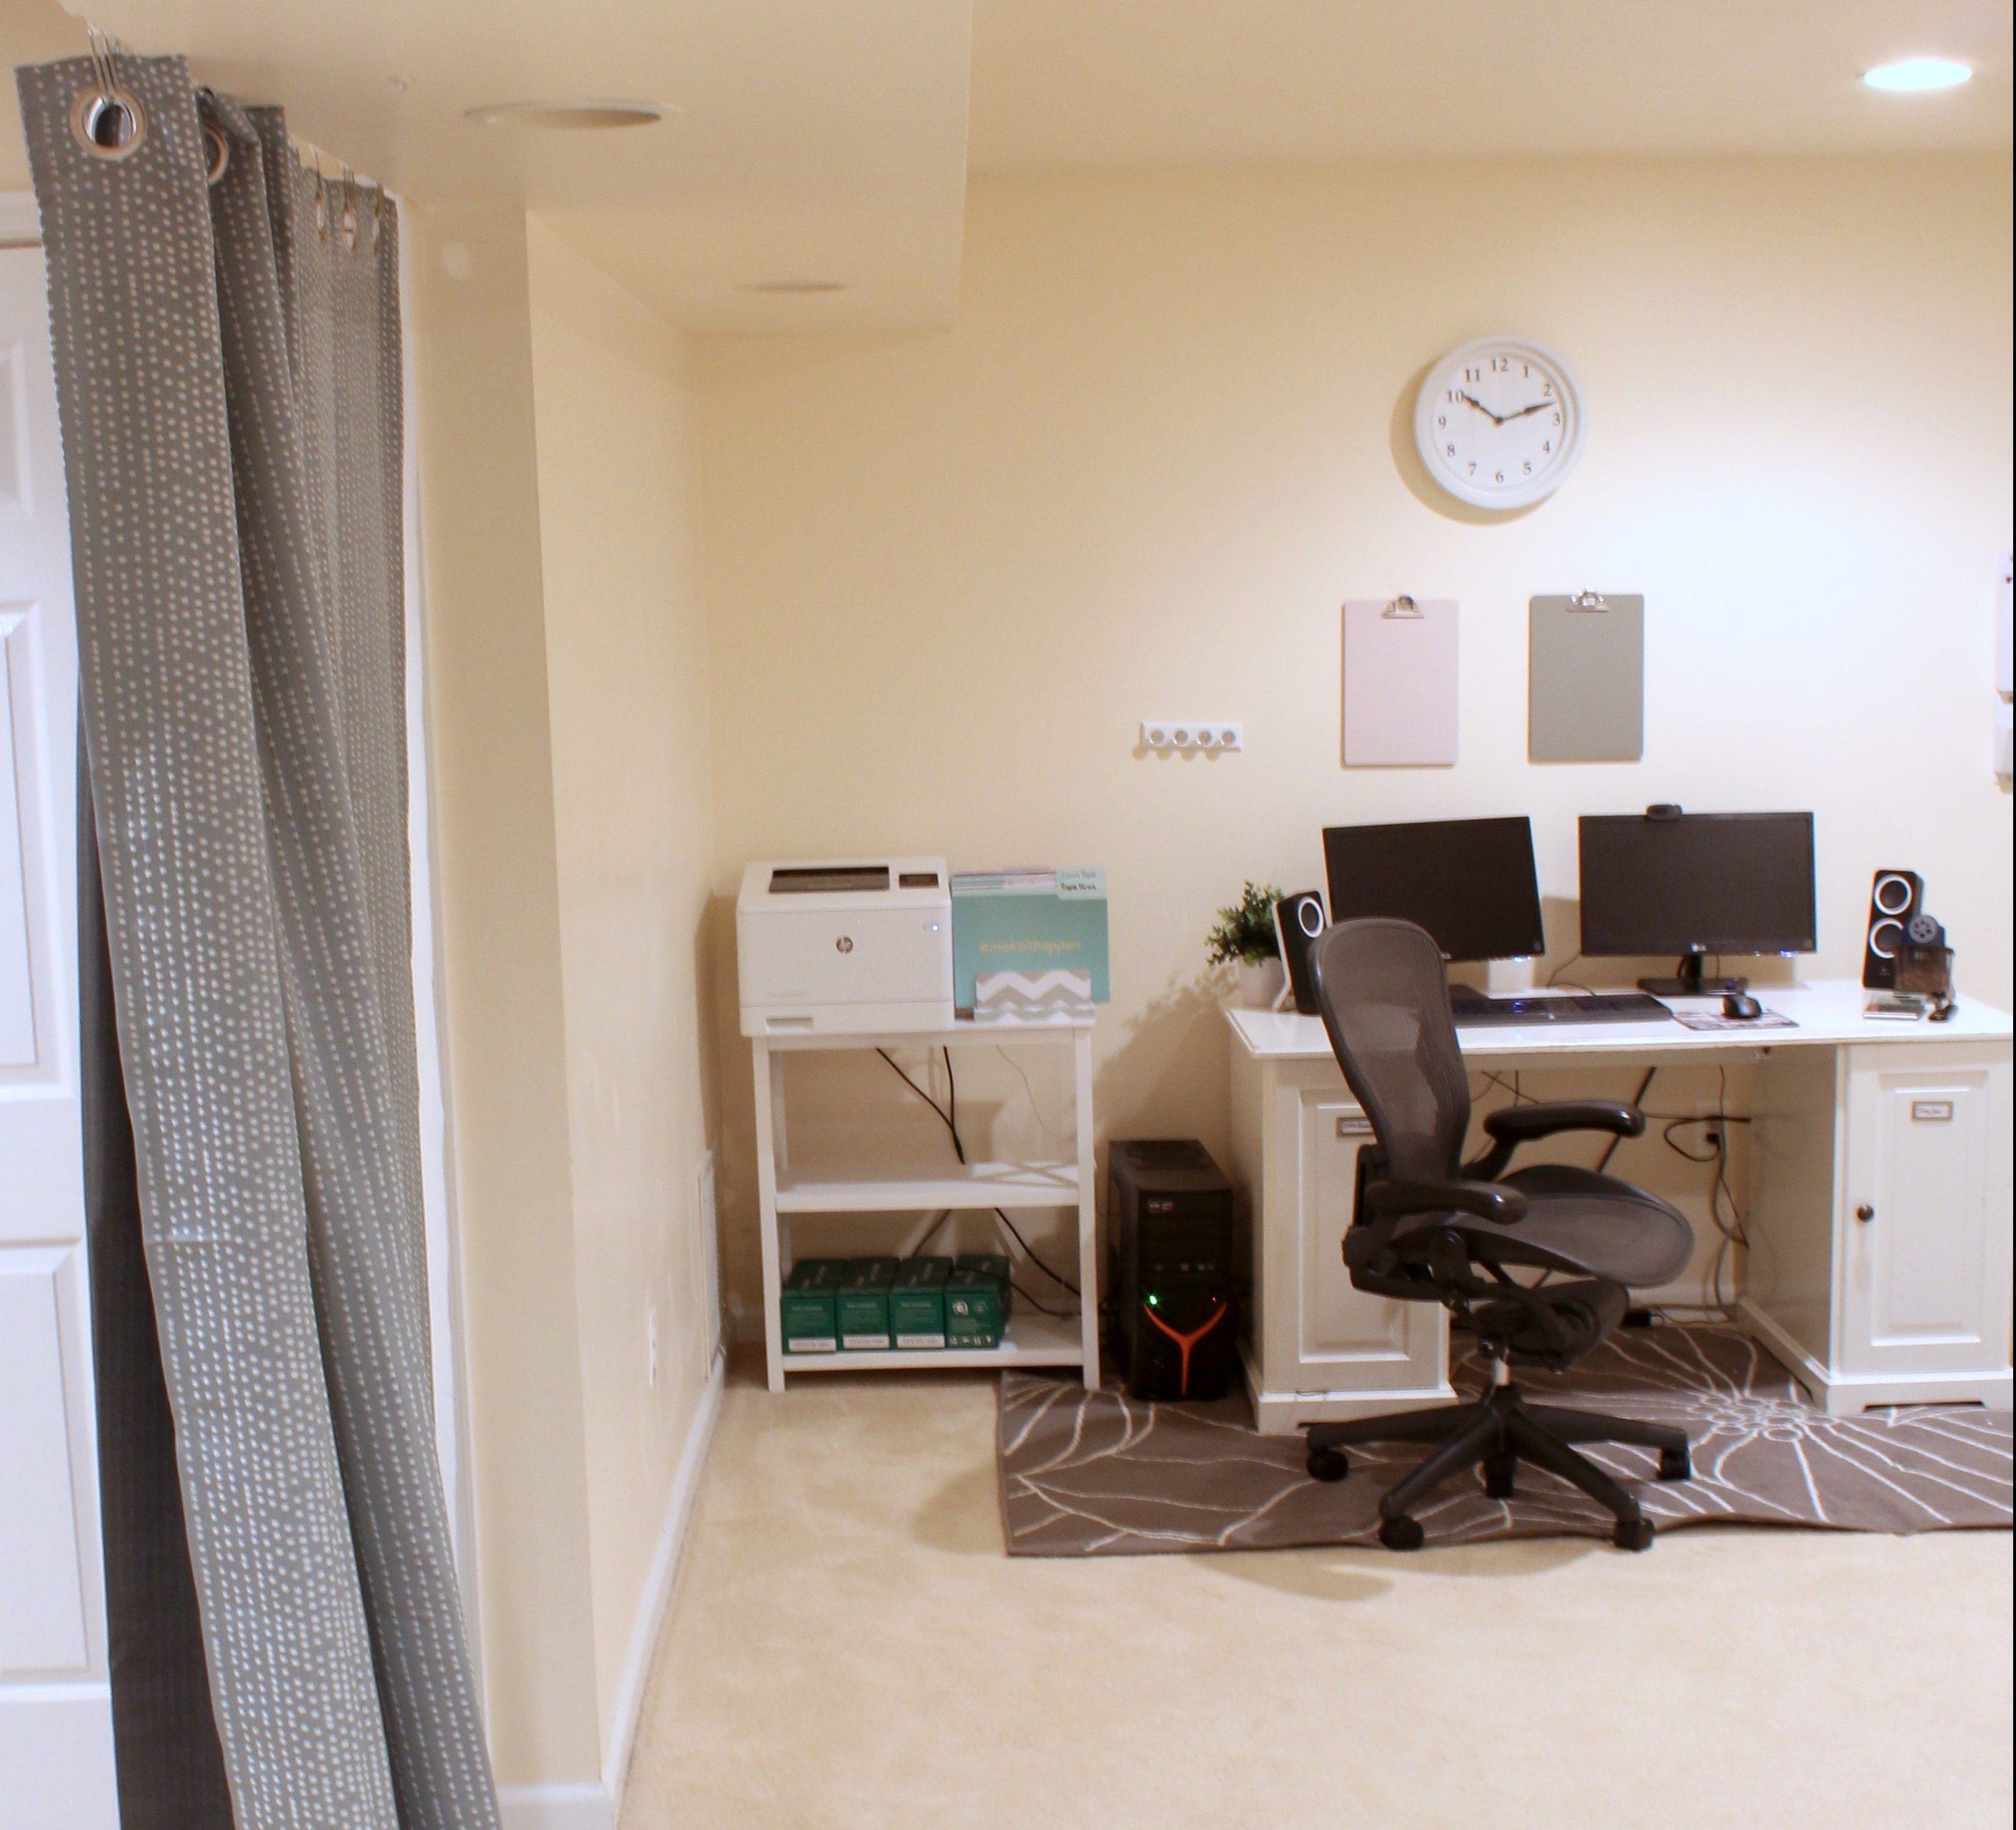 These Home Office Ideas On A Budget Are Exactly What I Needed To Get My